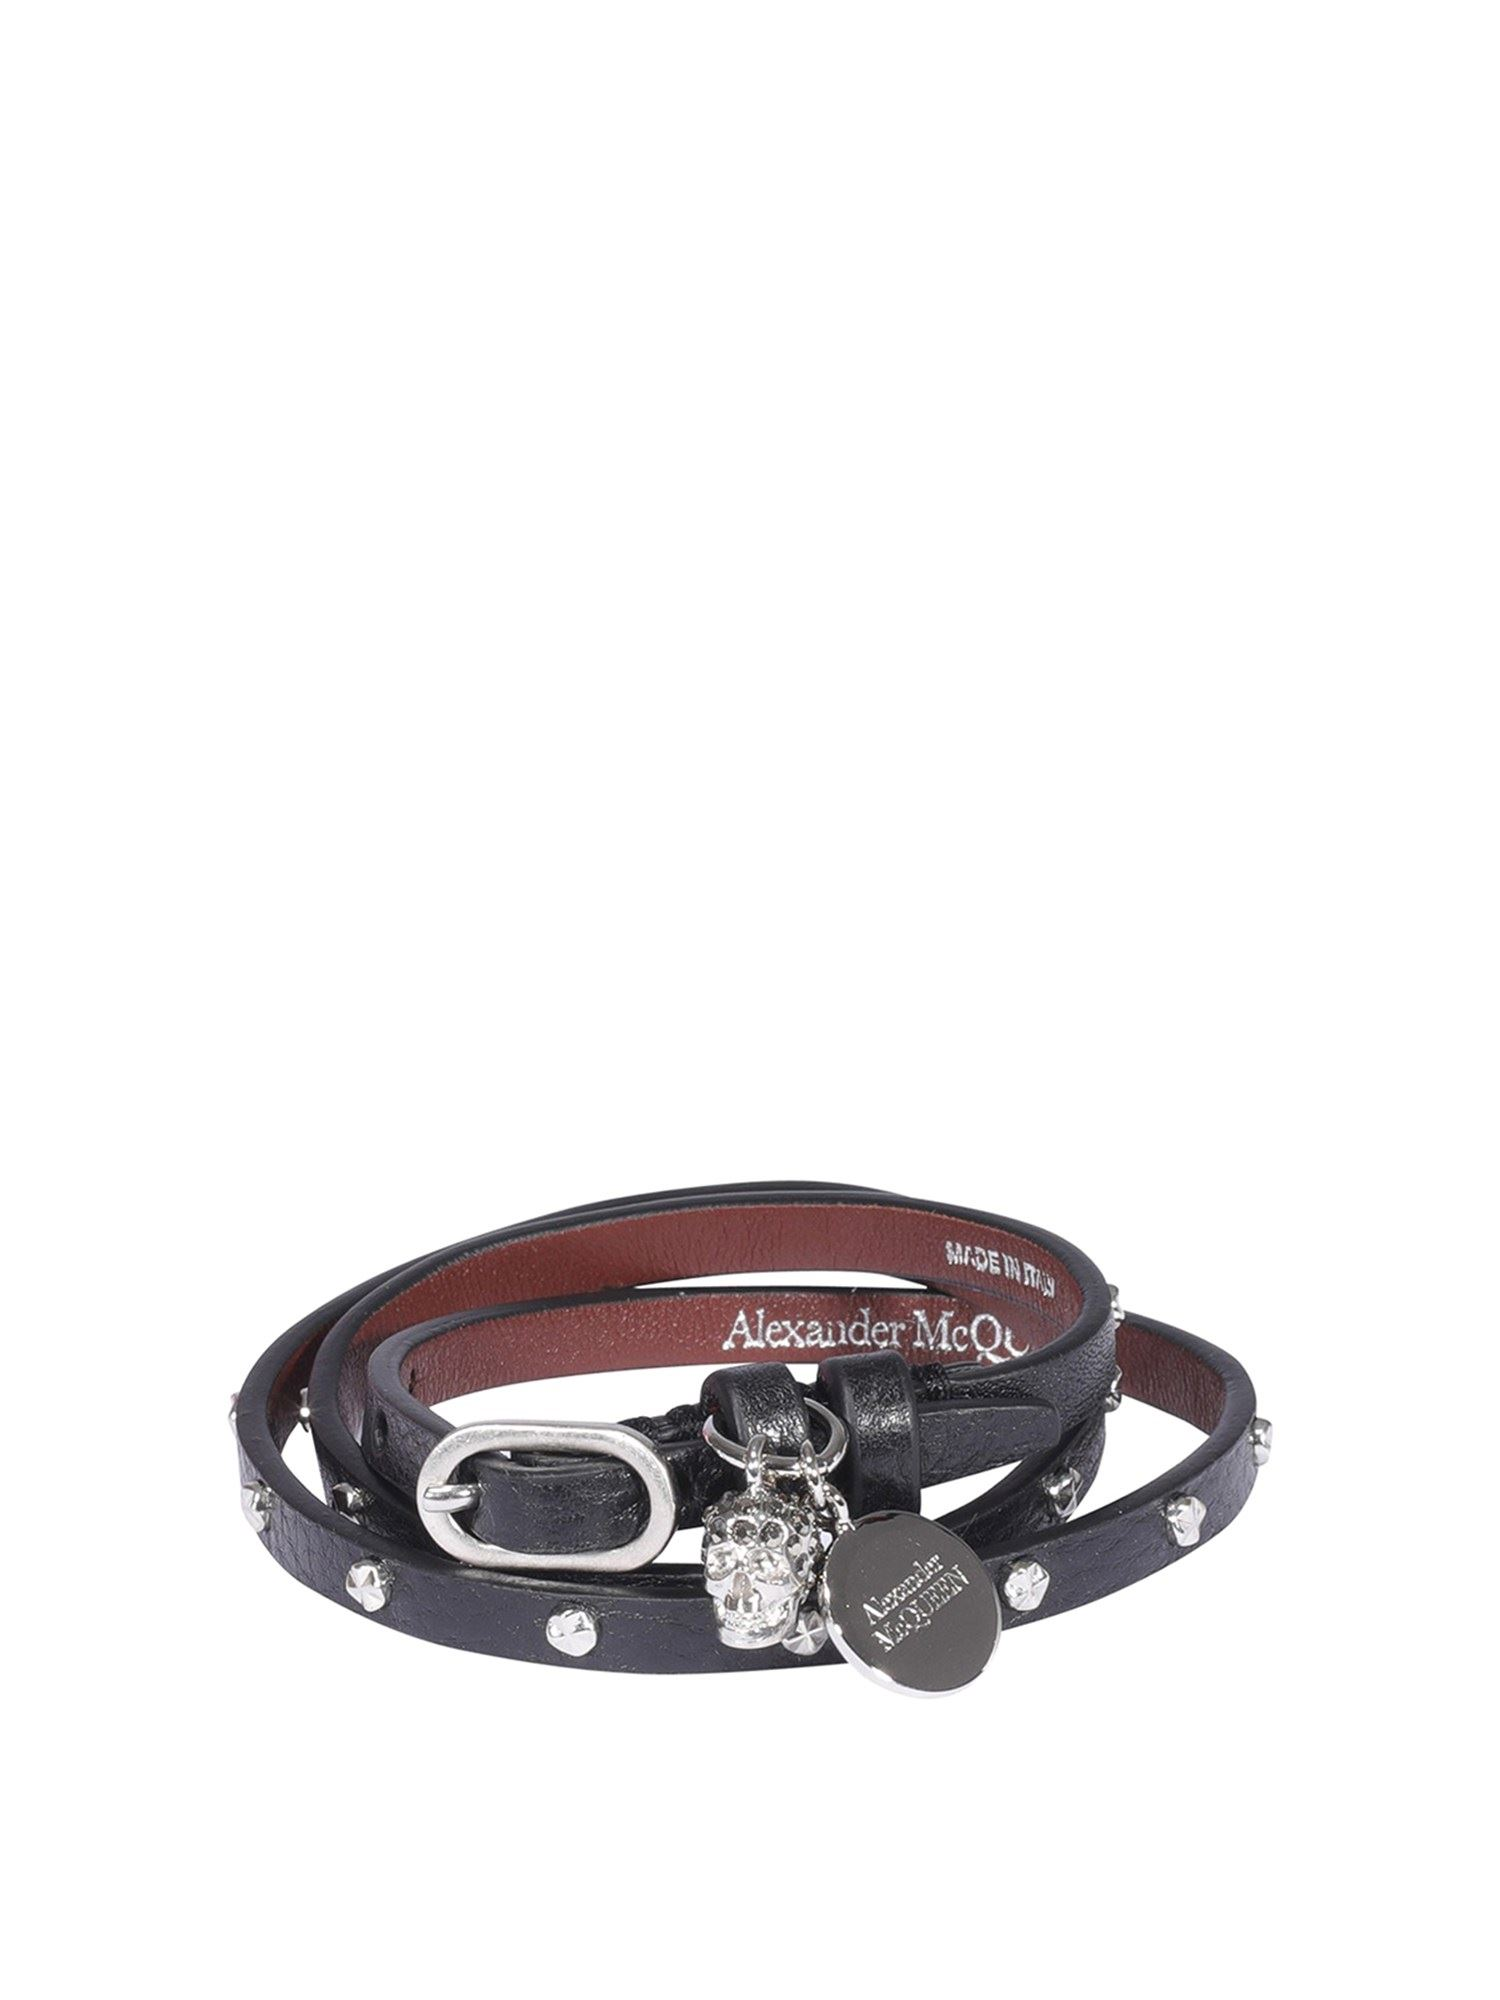 Alexander Mcqueen ALEXANDER MCQUEEN LEATHER WRAPAROUND BRACELET IN BLACK